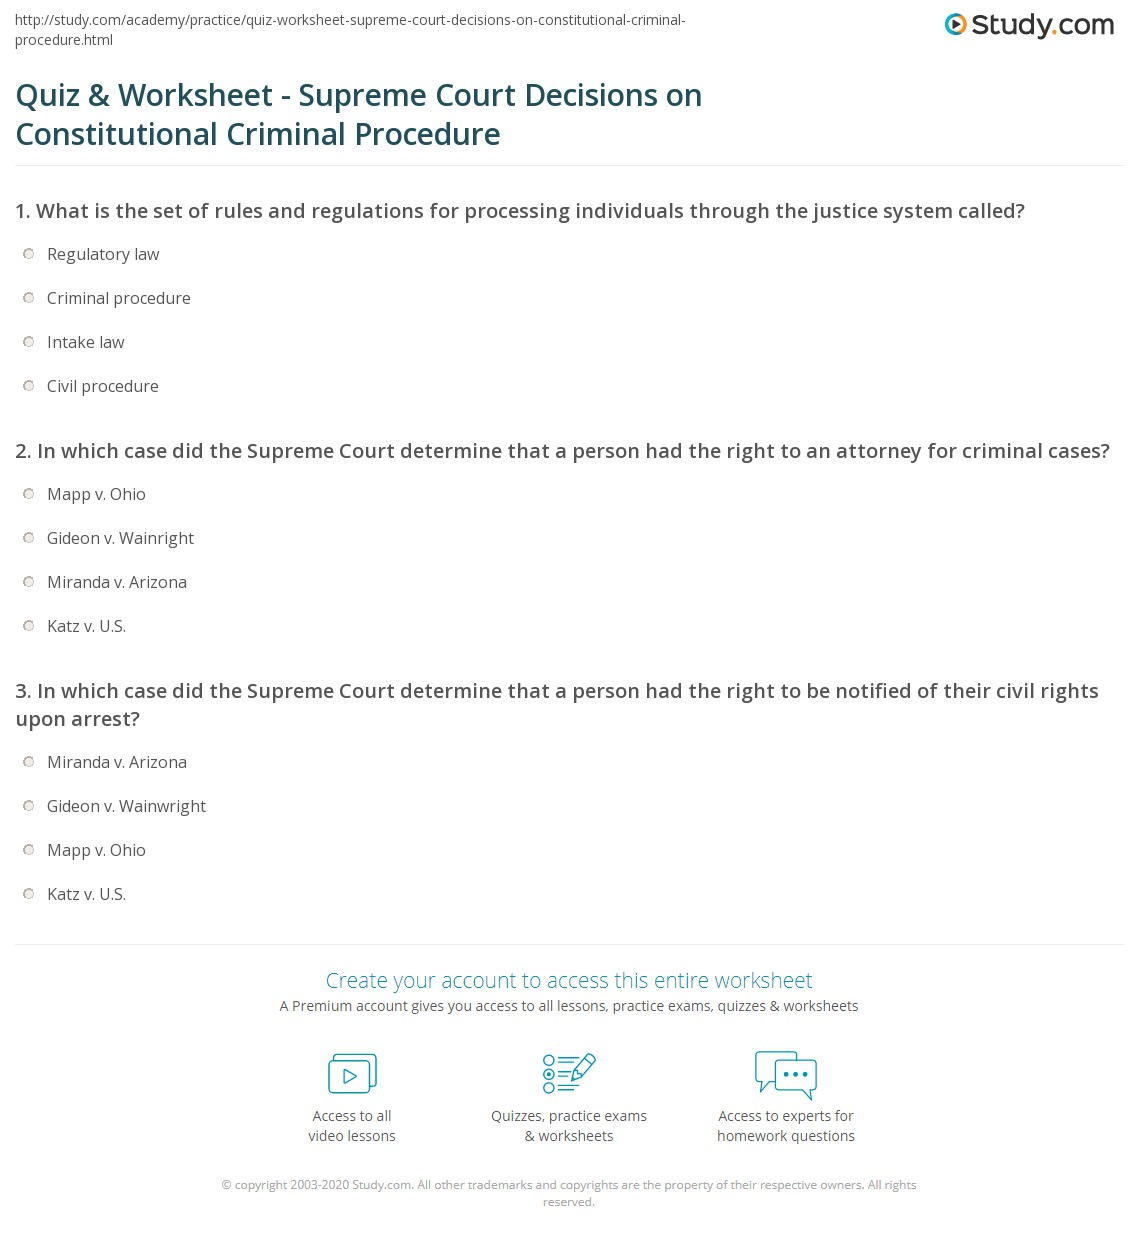 quiz worksheet supreme court decisions on constitutional criminal procedure. Black Bedroom Furniture Sets. Home Design Ideas